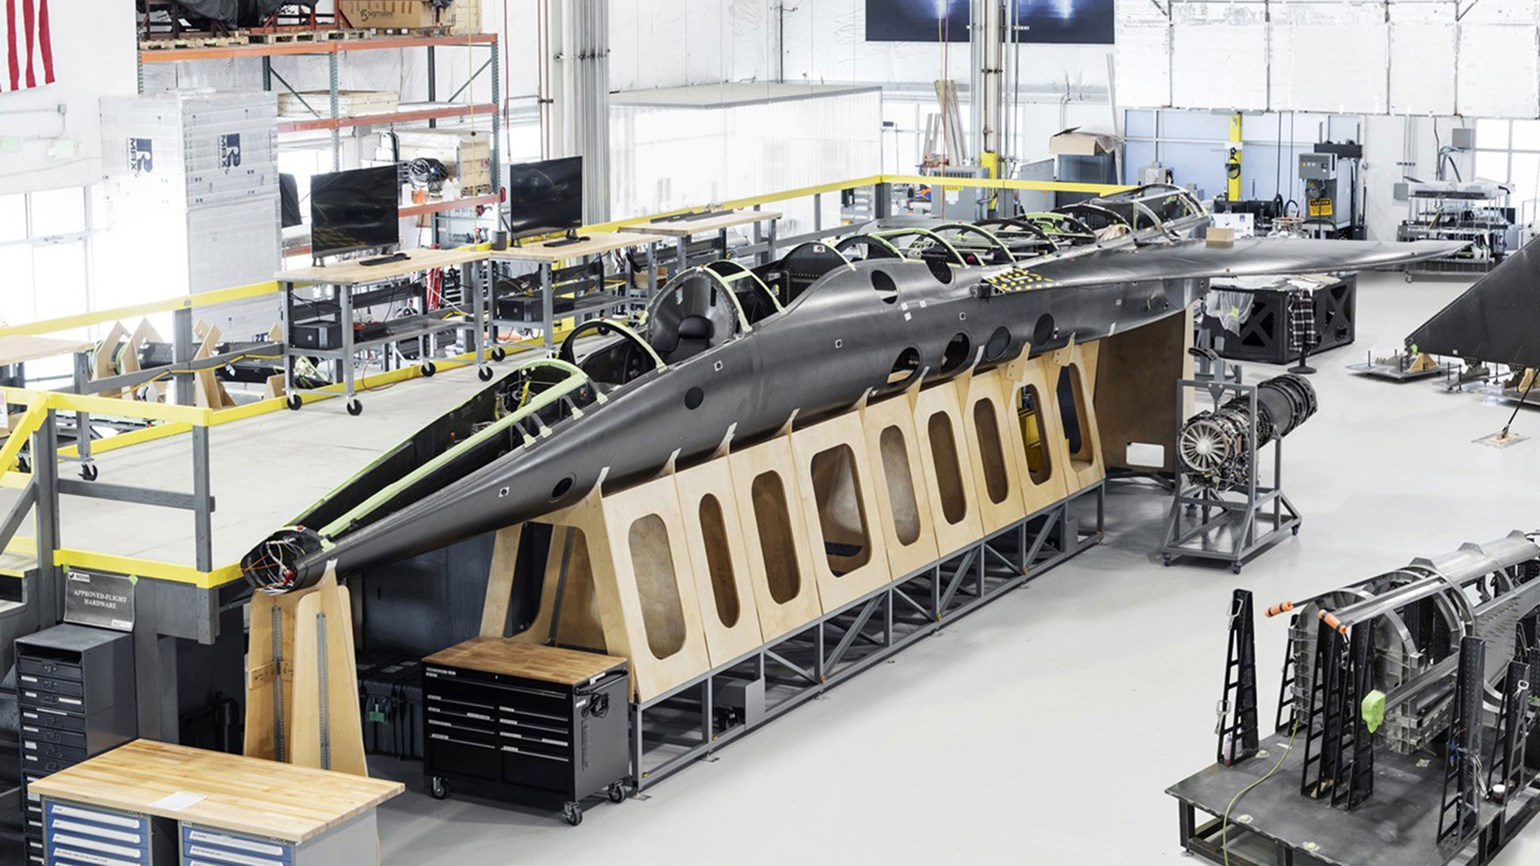 Boom Supersonic to reveal prototype jet in Oct.